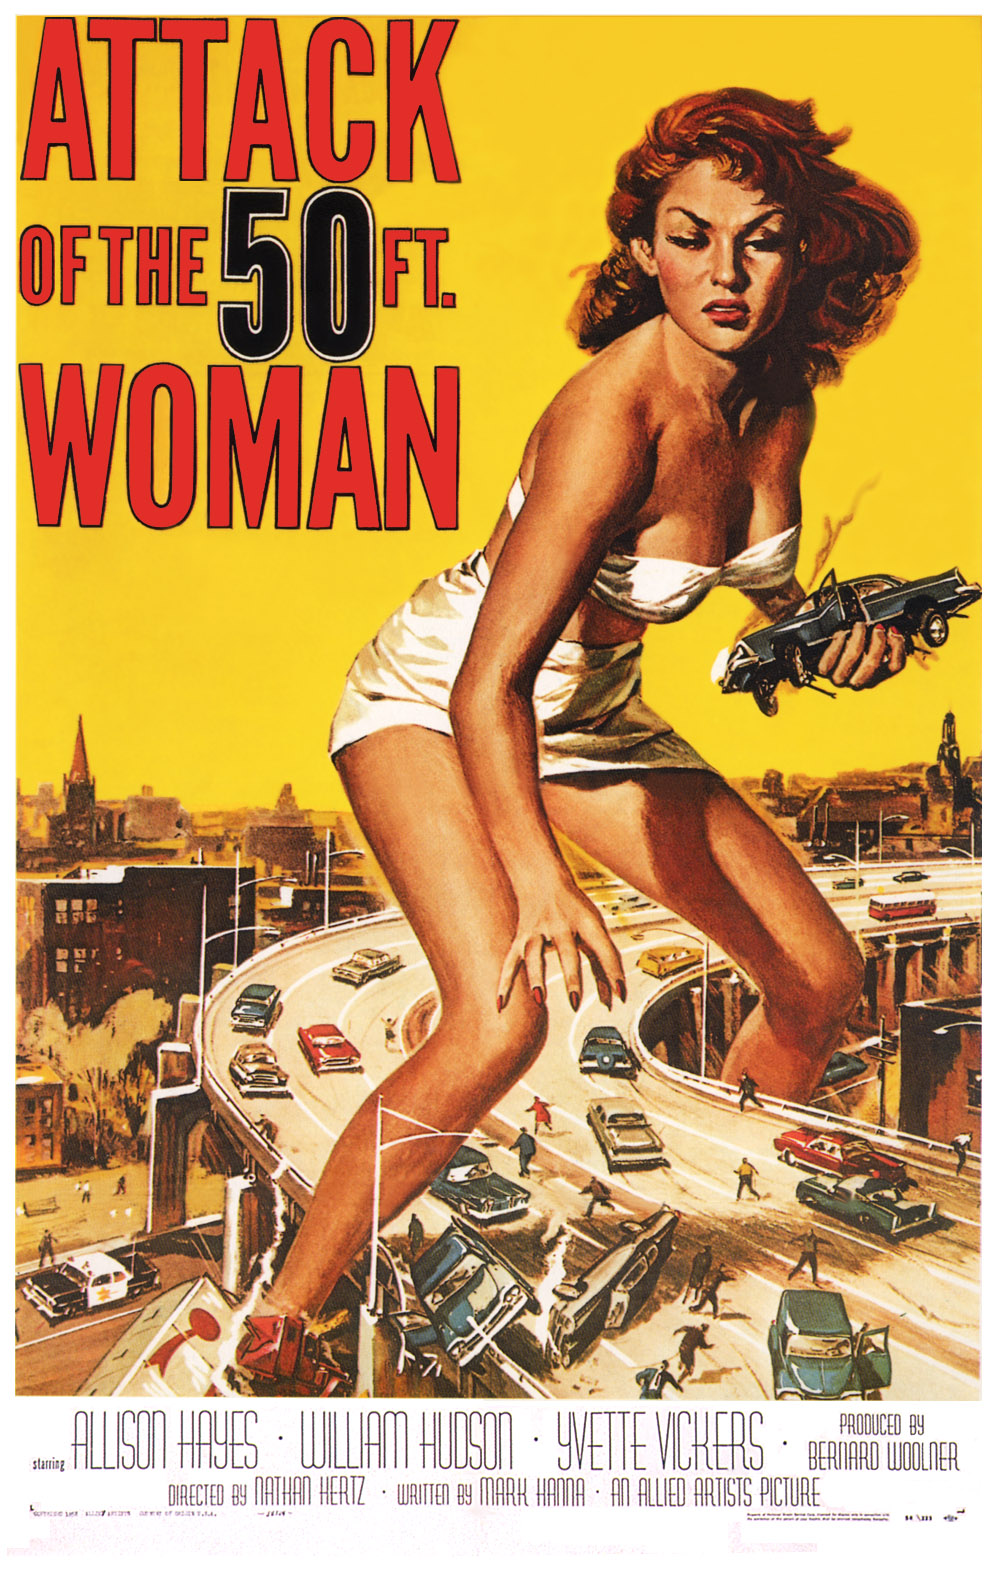 Attack of the 50 Ft. Woman movie